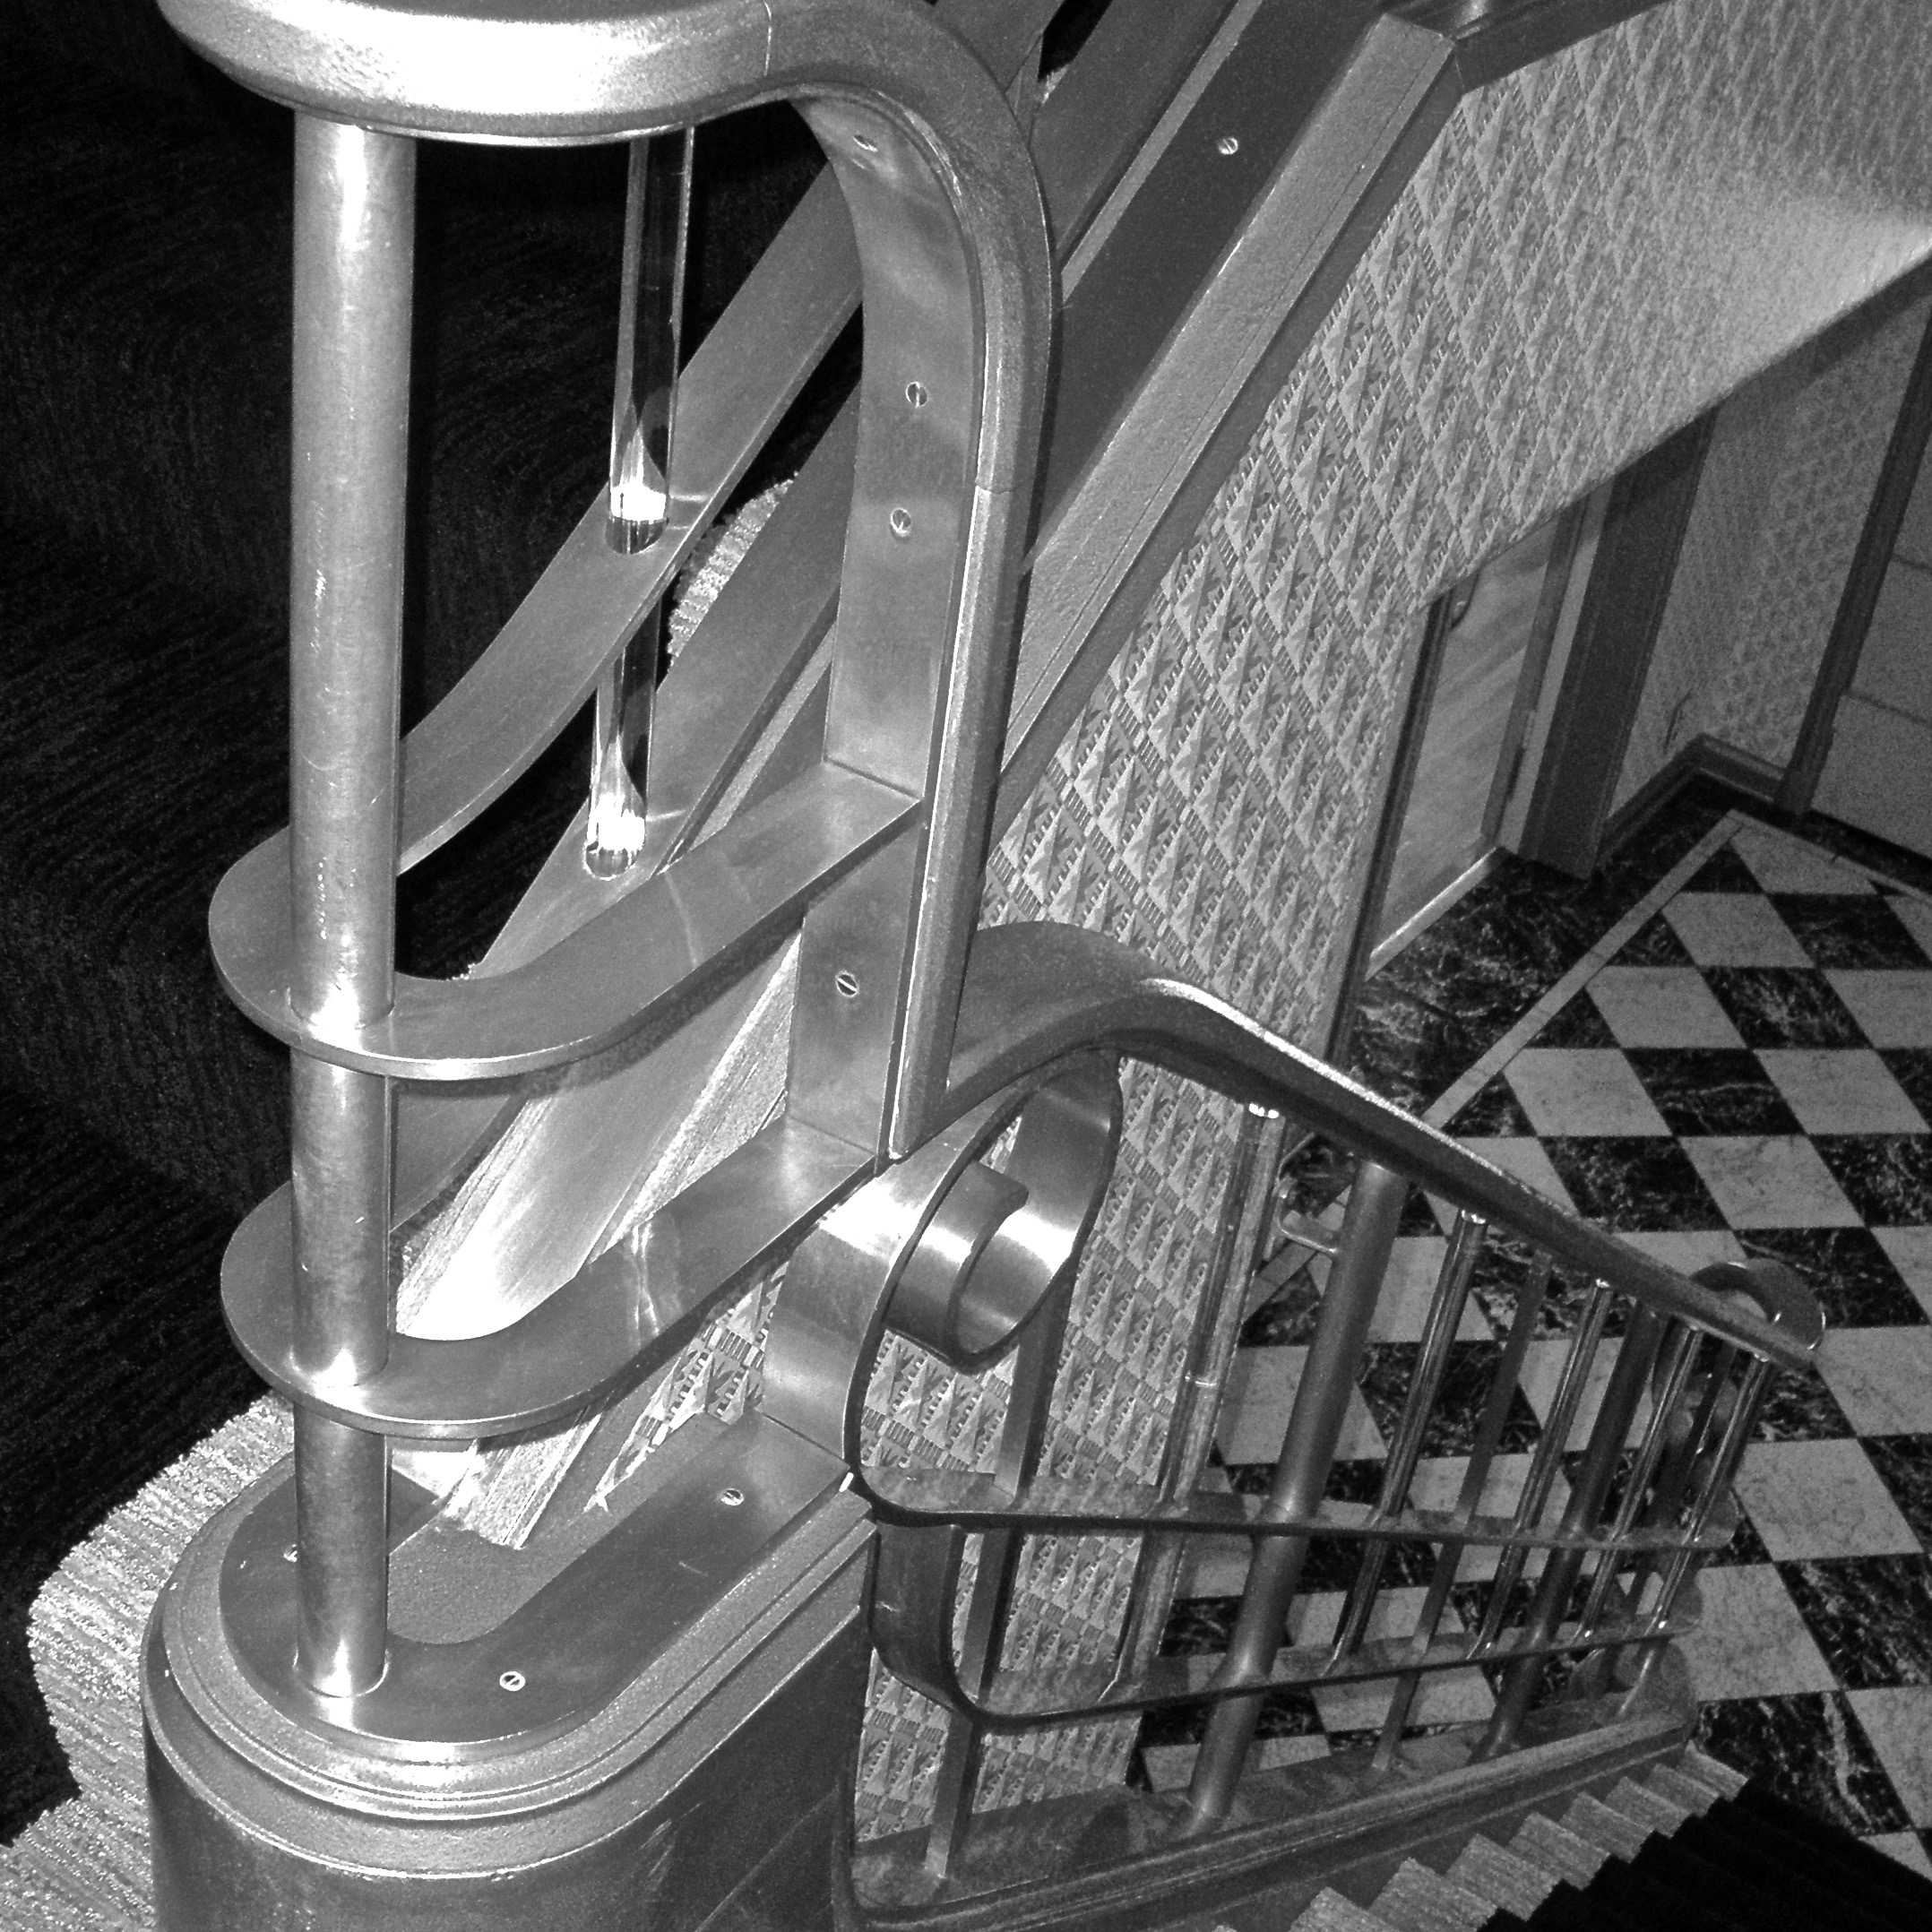 THE CHATOL HOUSE & GARDENS | MAIN STAIRS